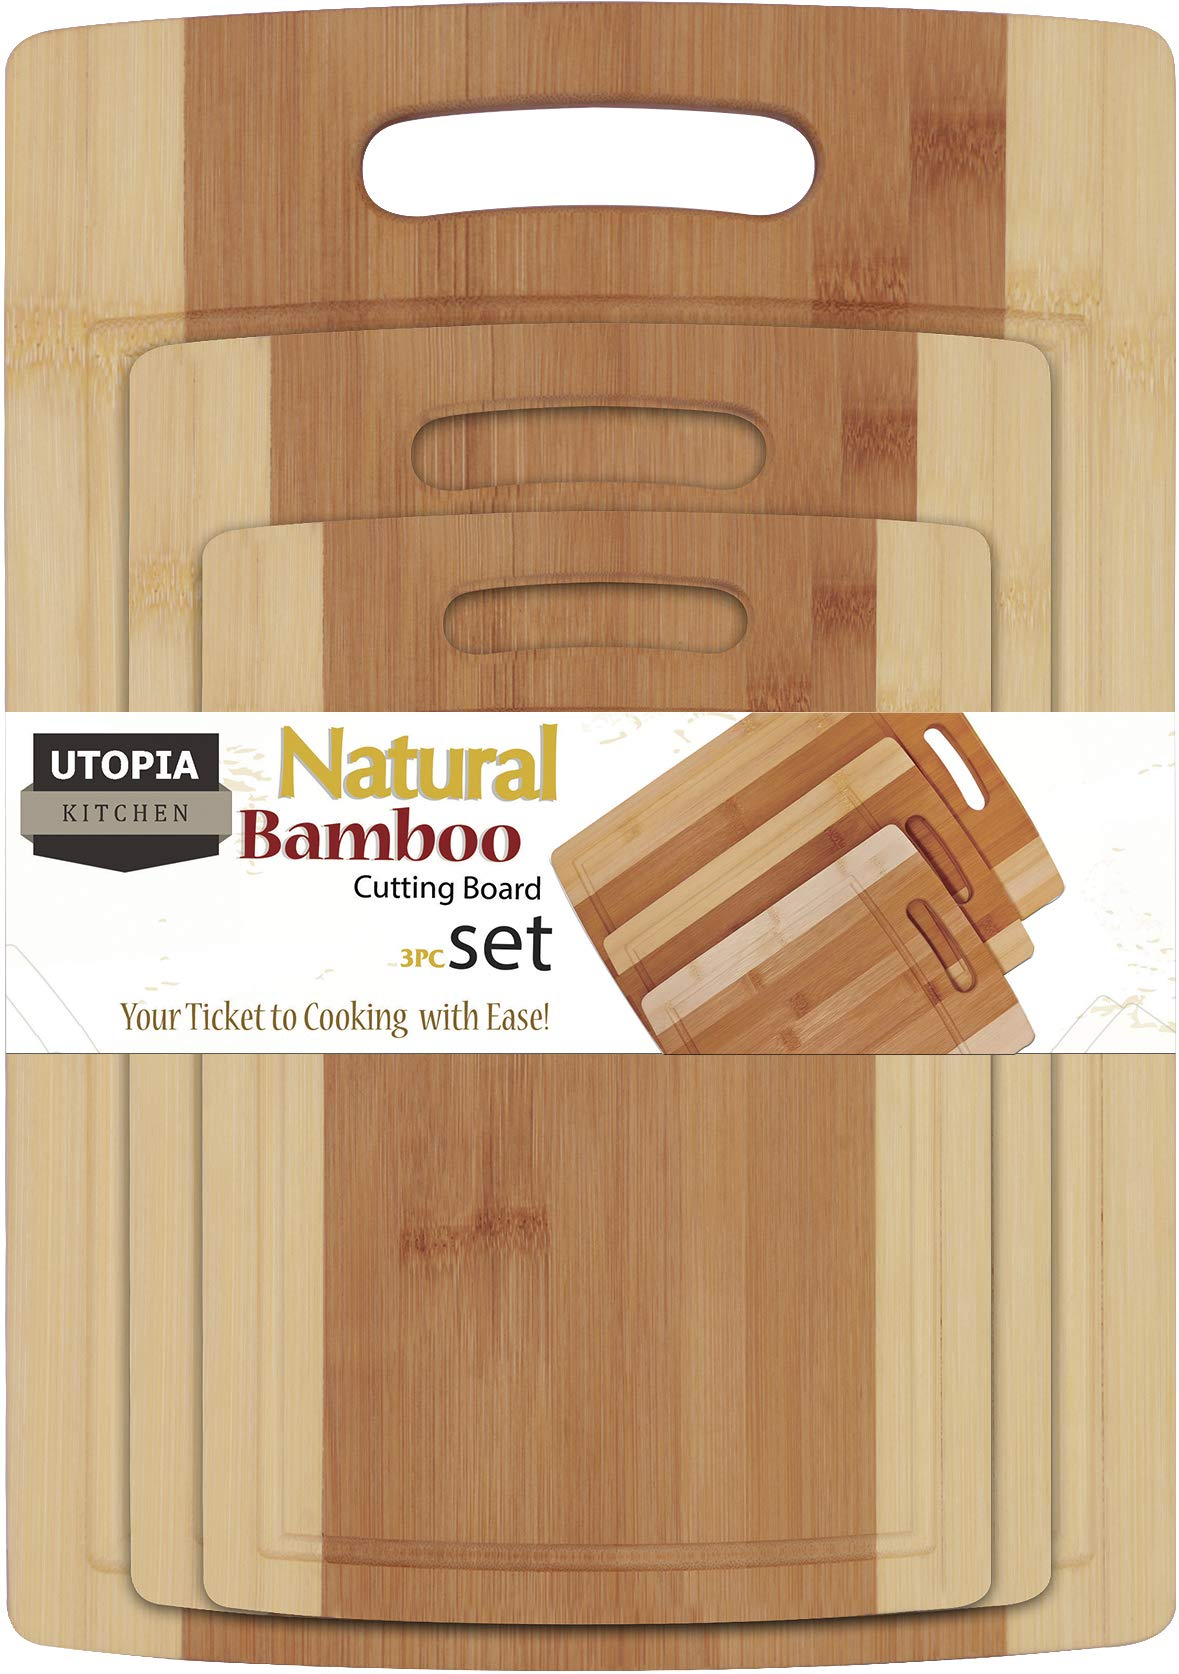 Utopia Kitchen Natural Bamboo Cutting Boards for Kitchen with Juice Groove Wooden Cutting Board Set of 3 - Chopping Boards for Vegetable, Fruits, Meat and Cheese by Utopia Kitchen (Image #1)